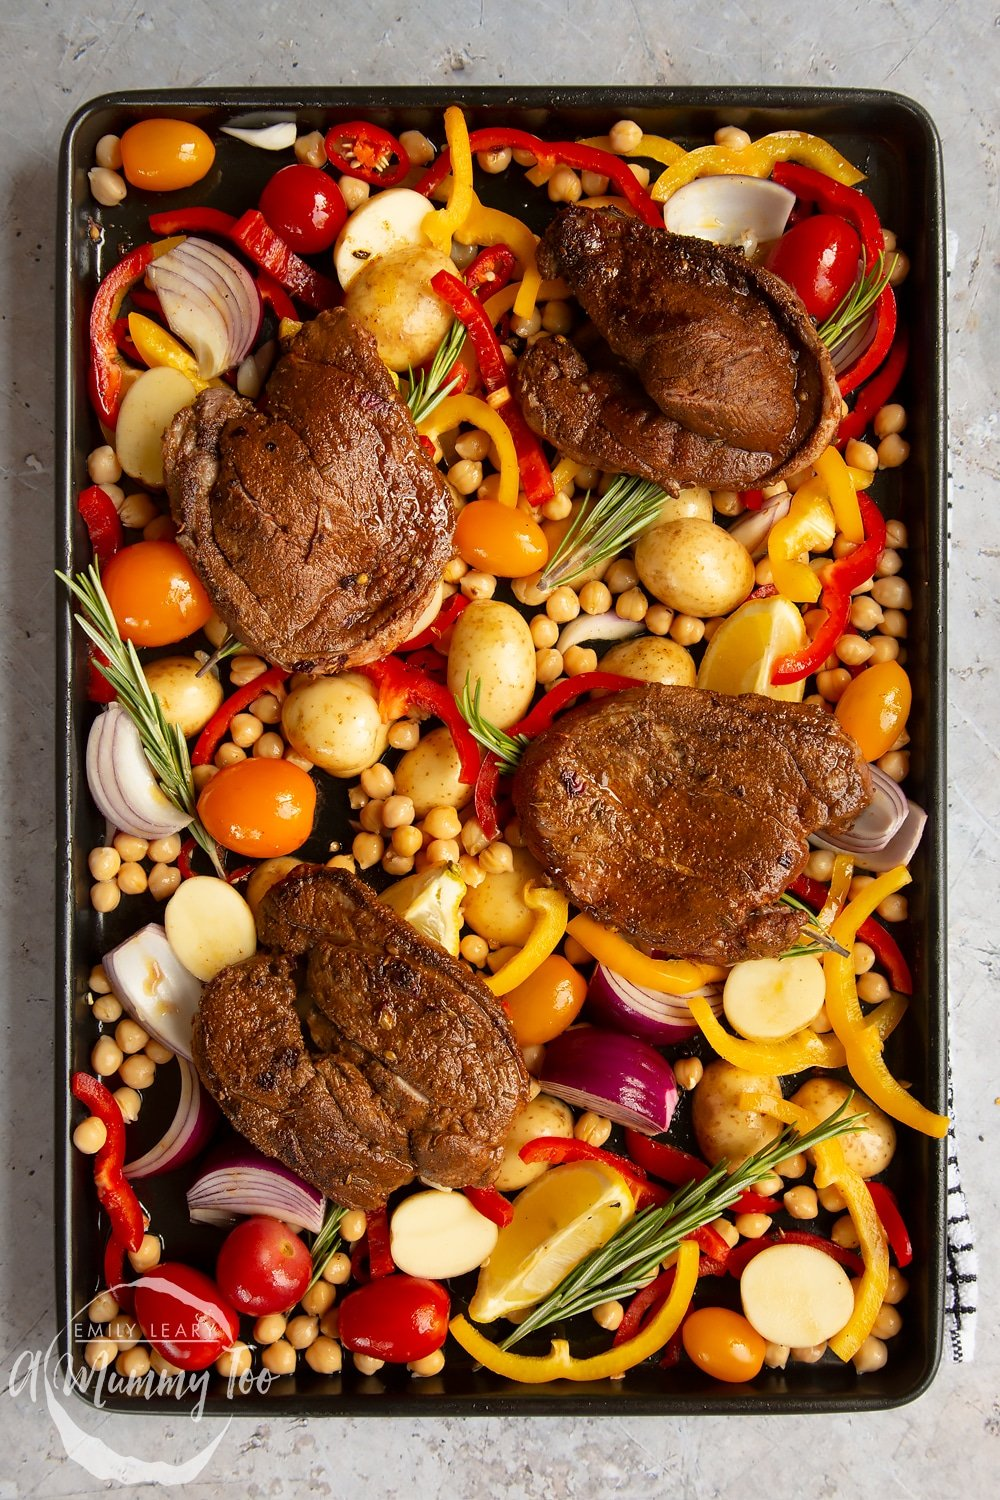 Lamb steaks placed on top of the vegetables and rosemary